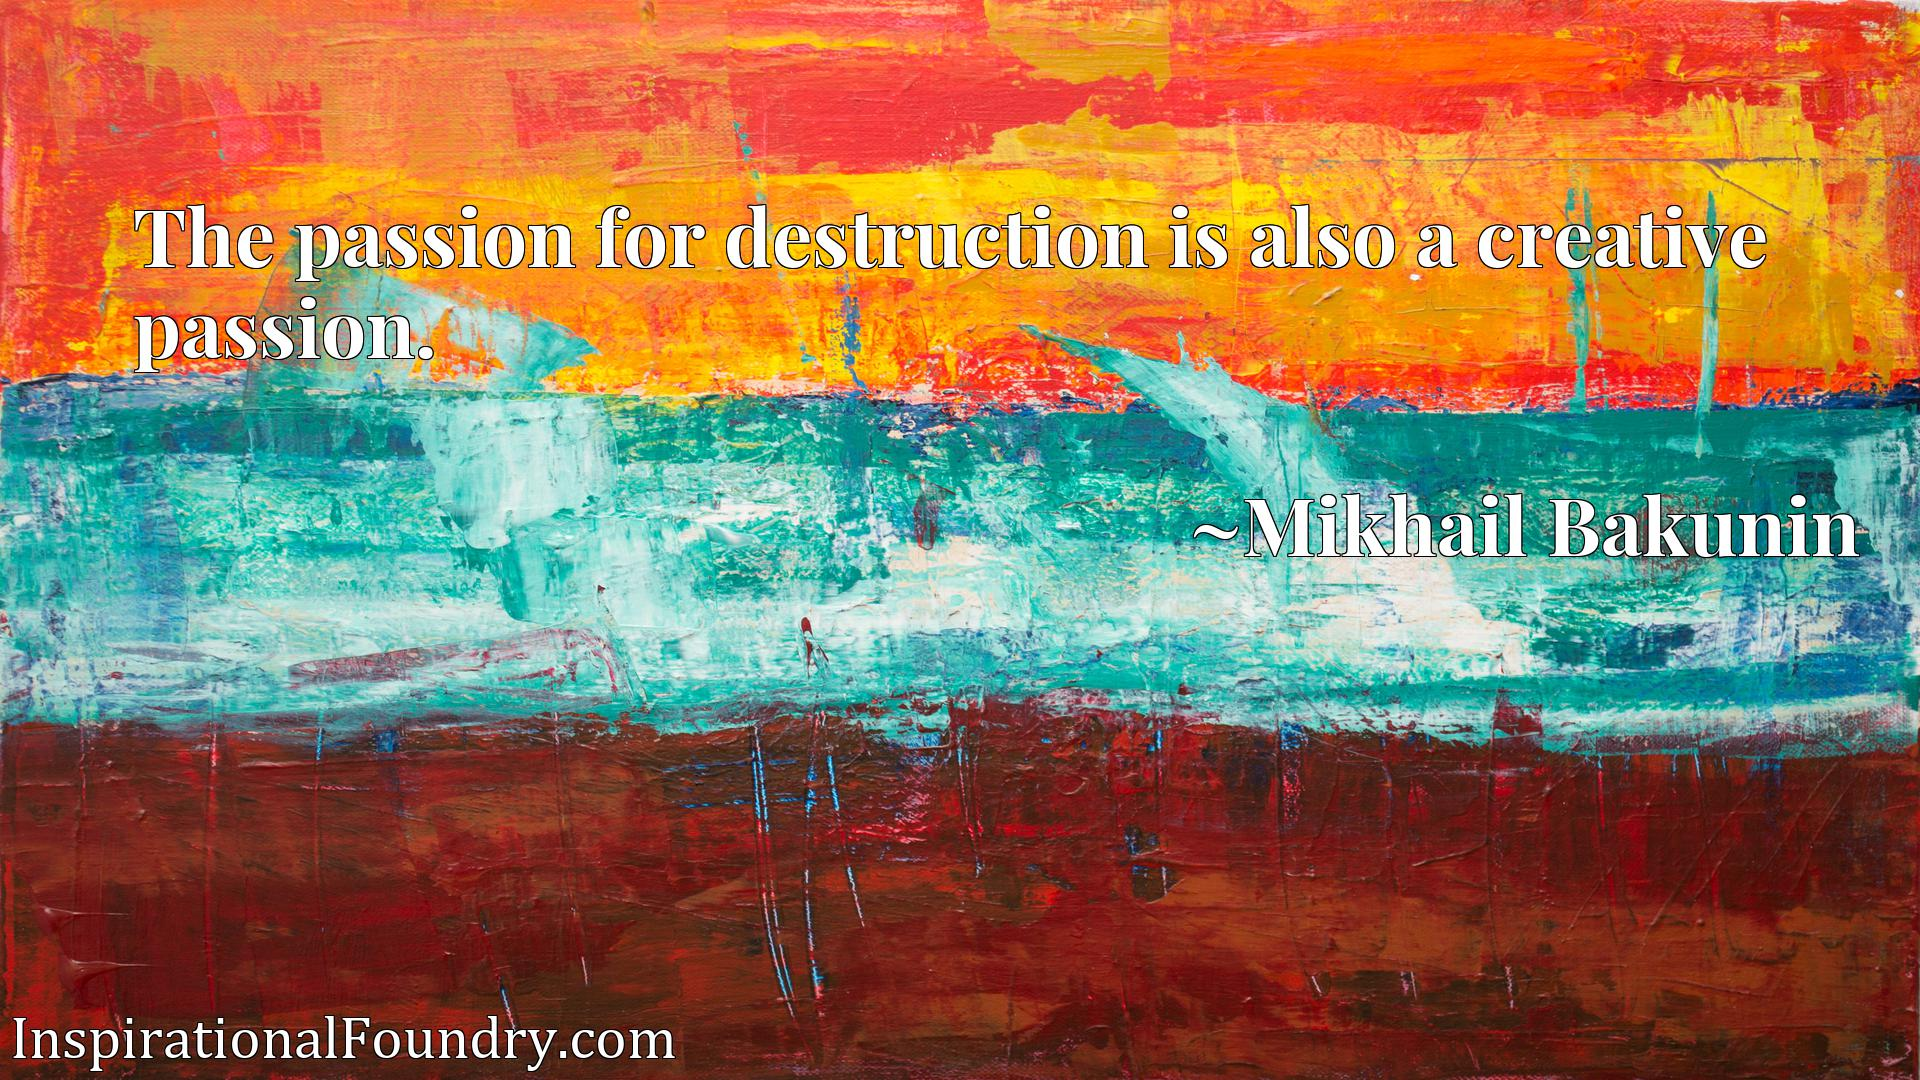 The passion for destruction is also a creative passion.